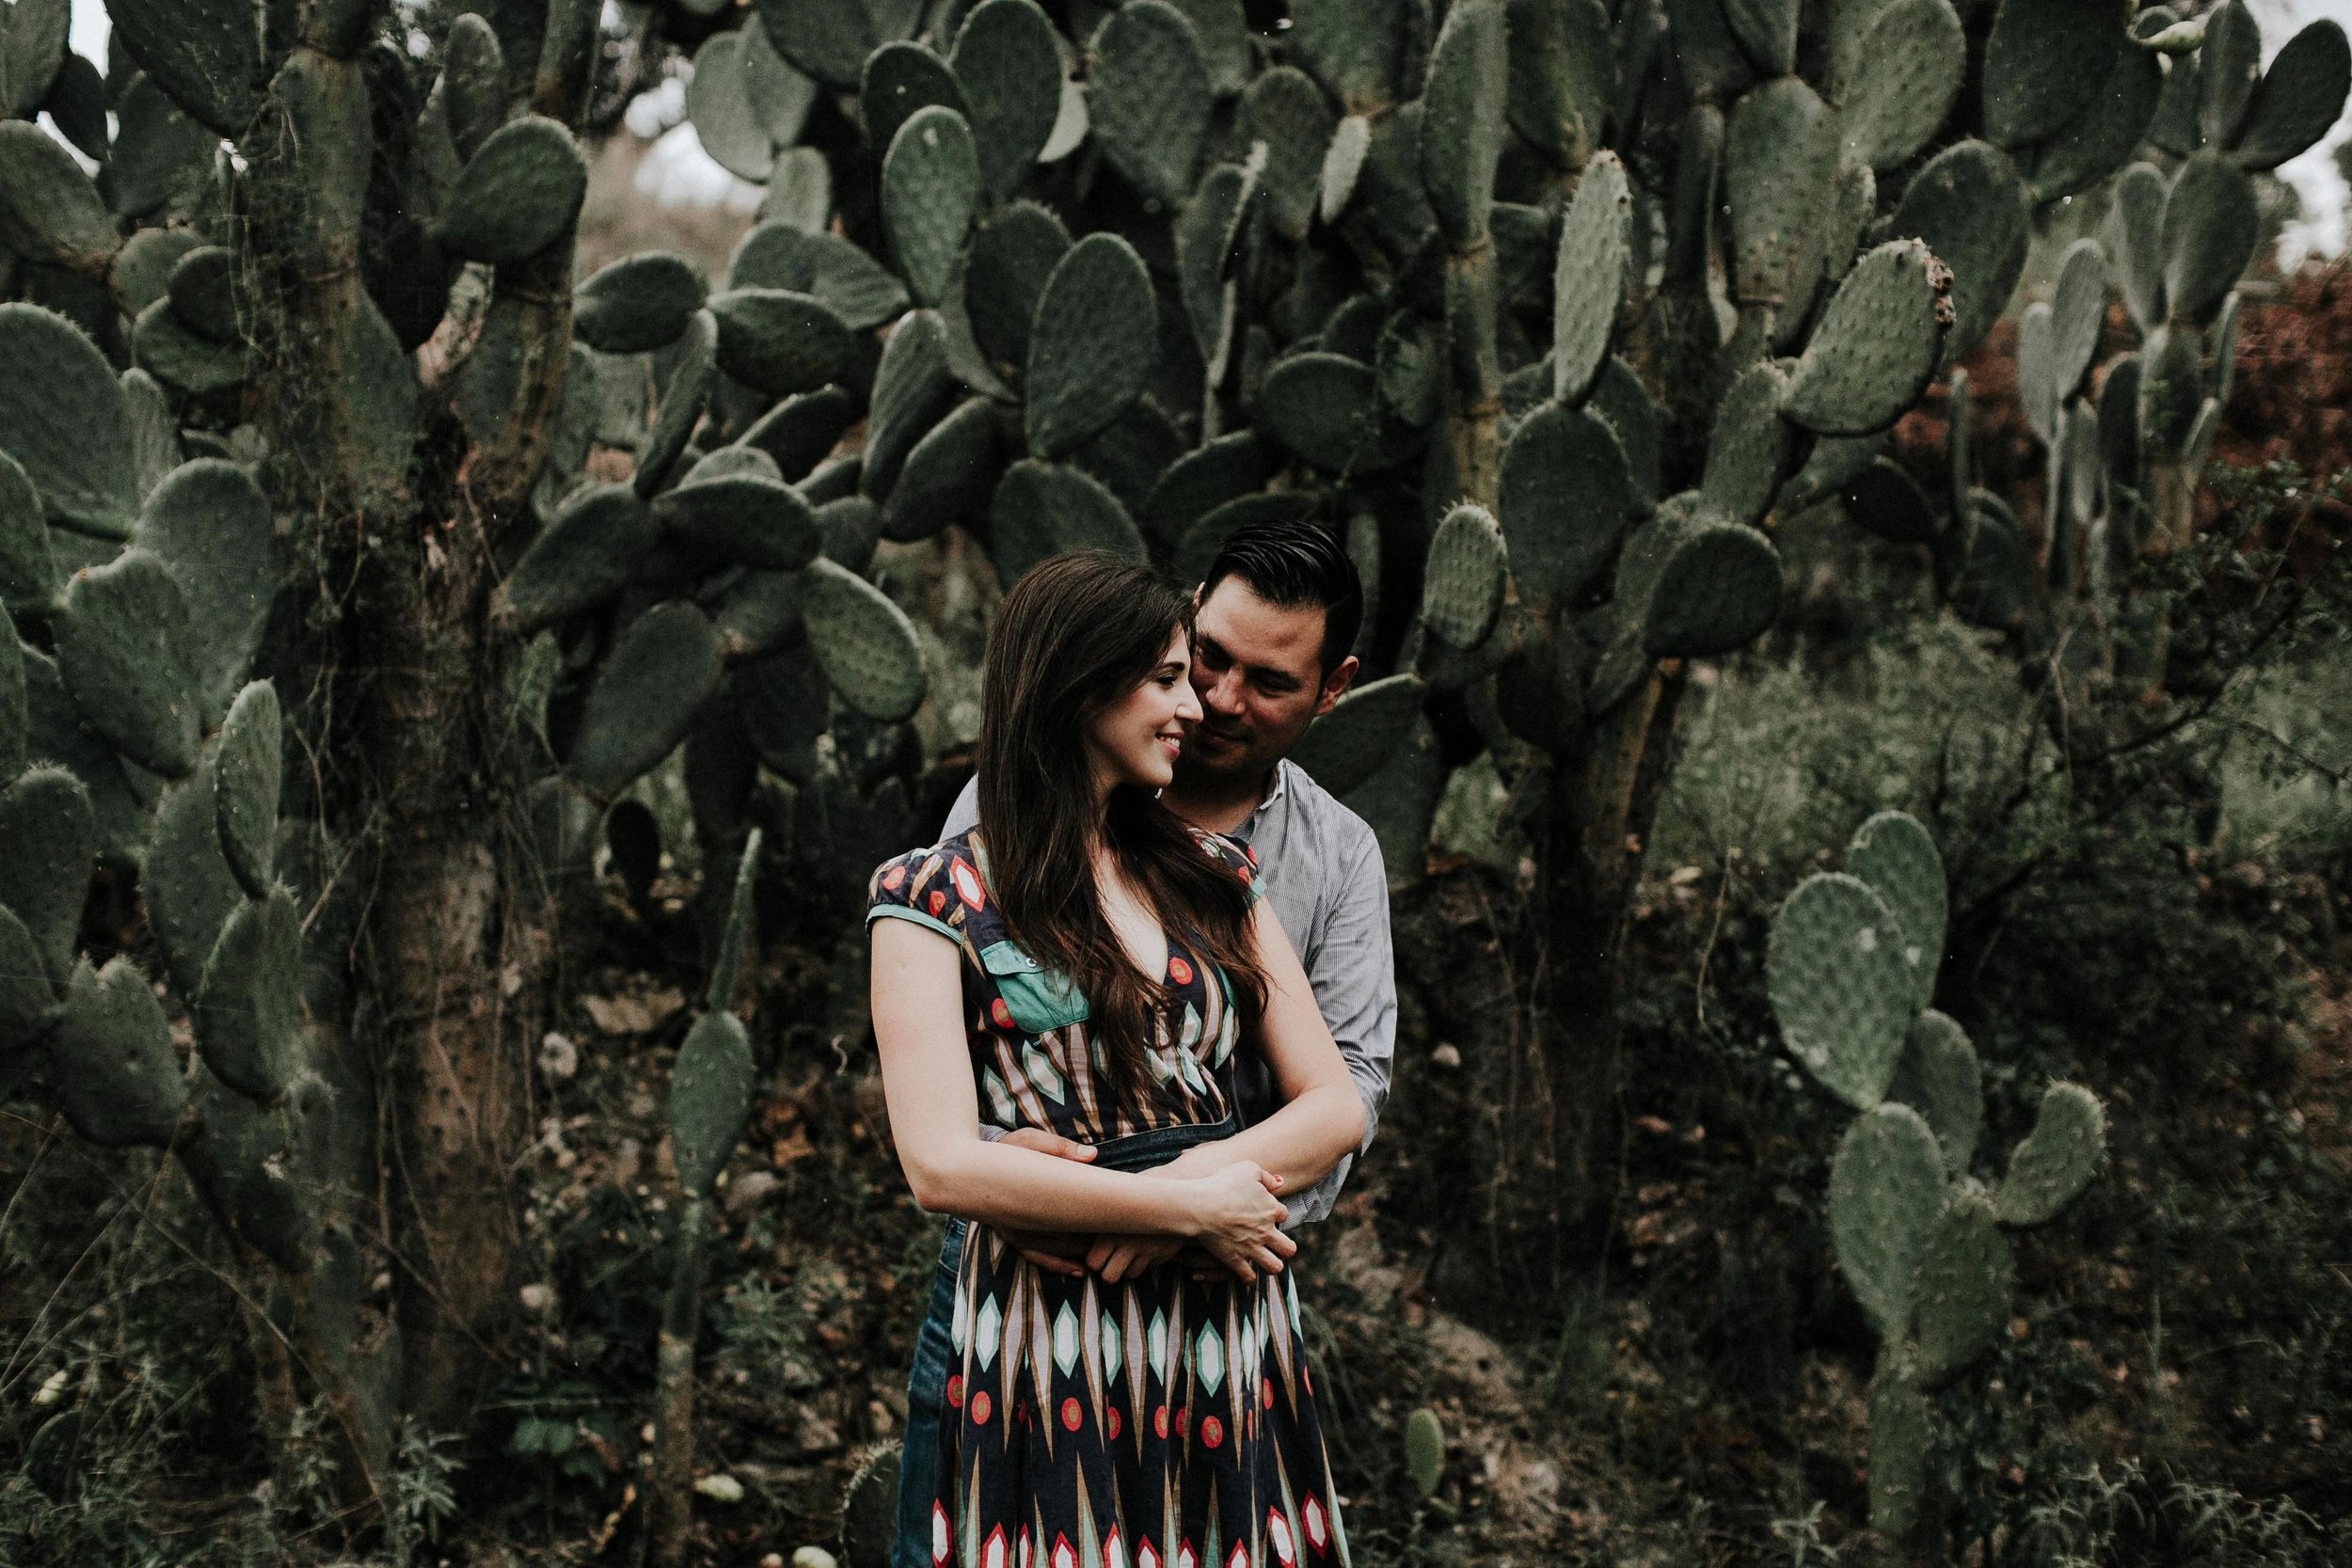 alfonso_flores_destination_wedding_photographer_Coahuila_saltillo_mexico_df39.jpg